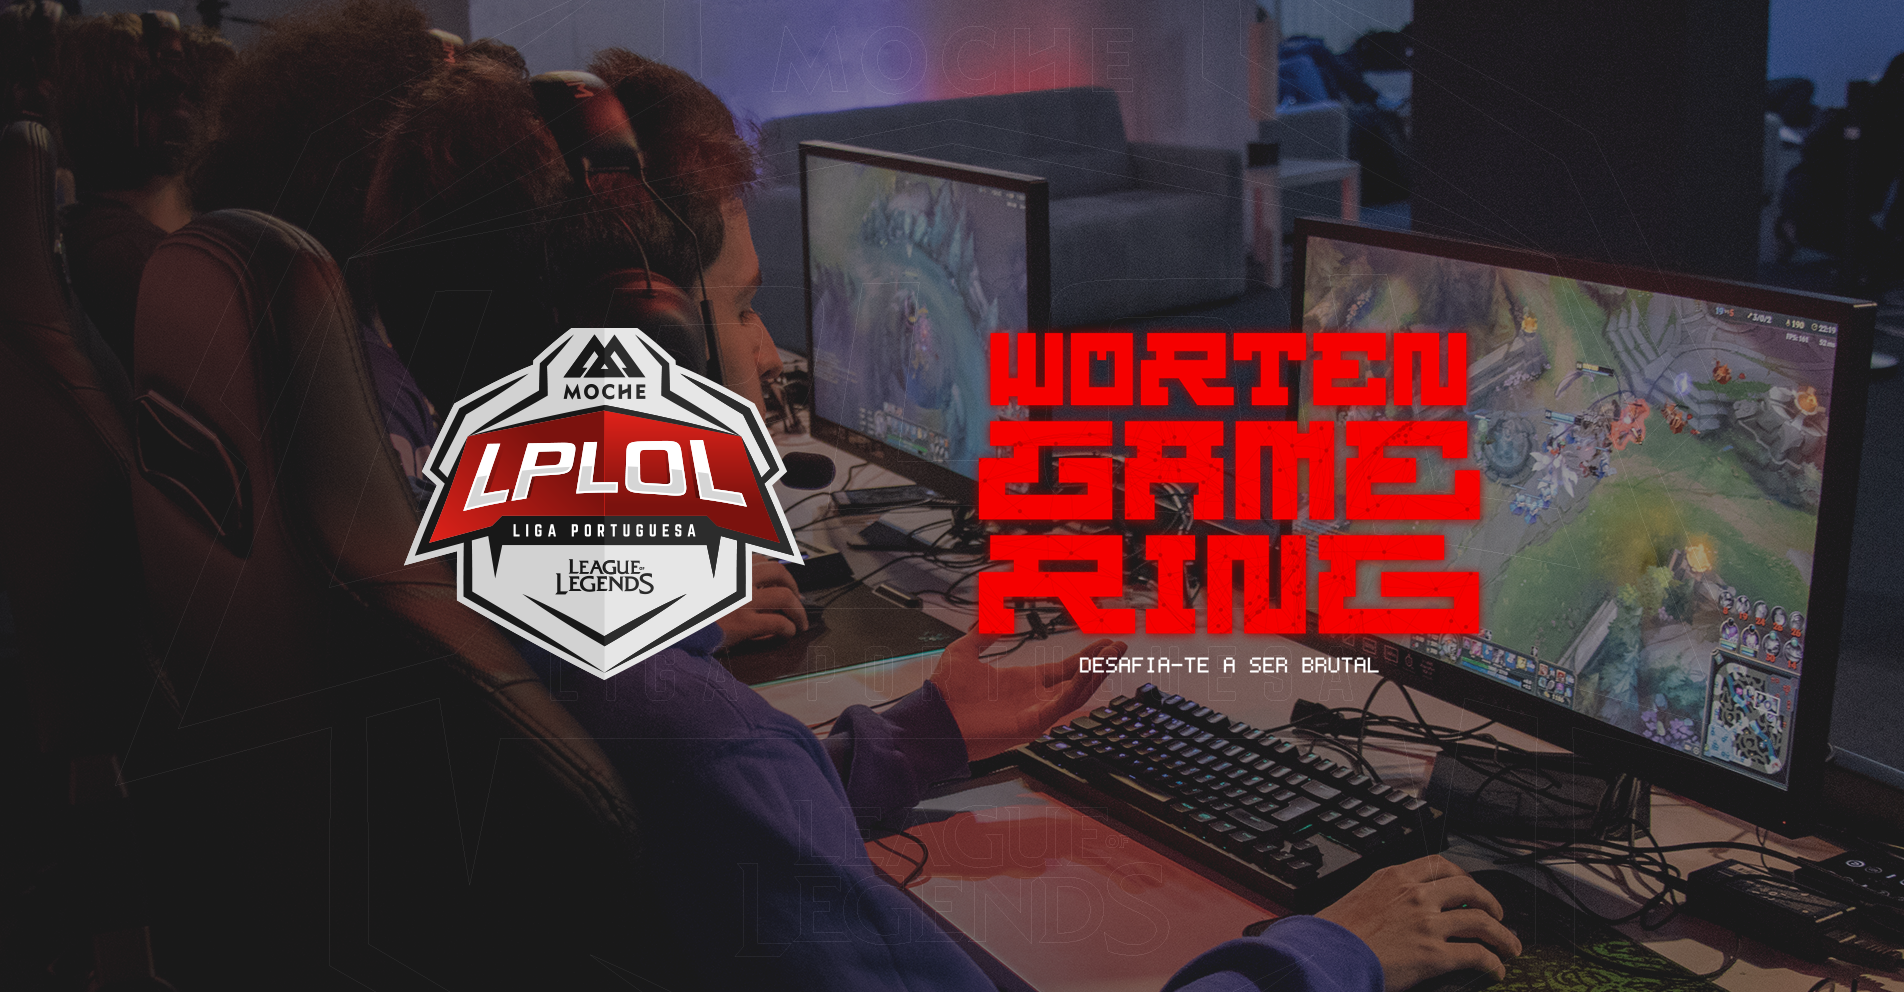 Worten Game Ring apoia a Liga Portuguesa de League of Legends